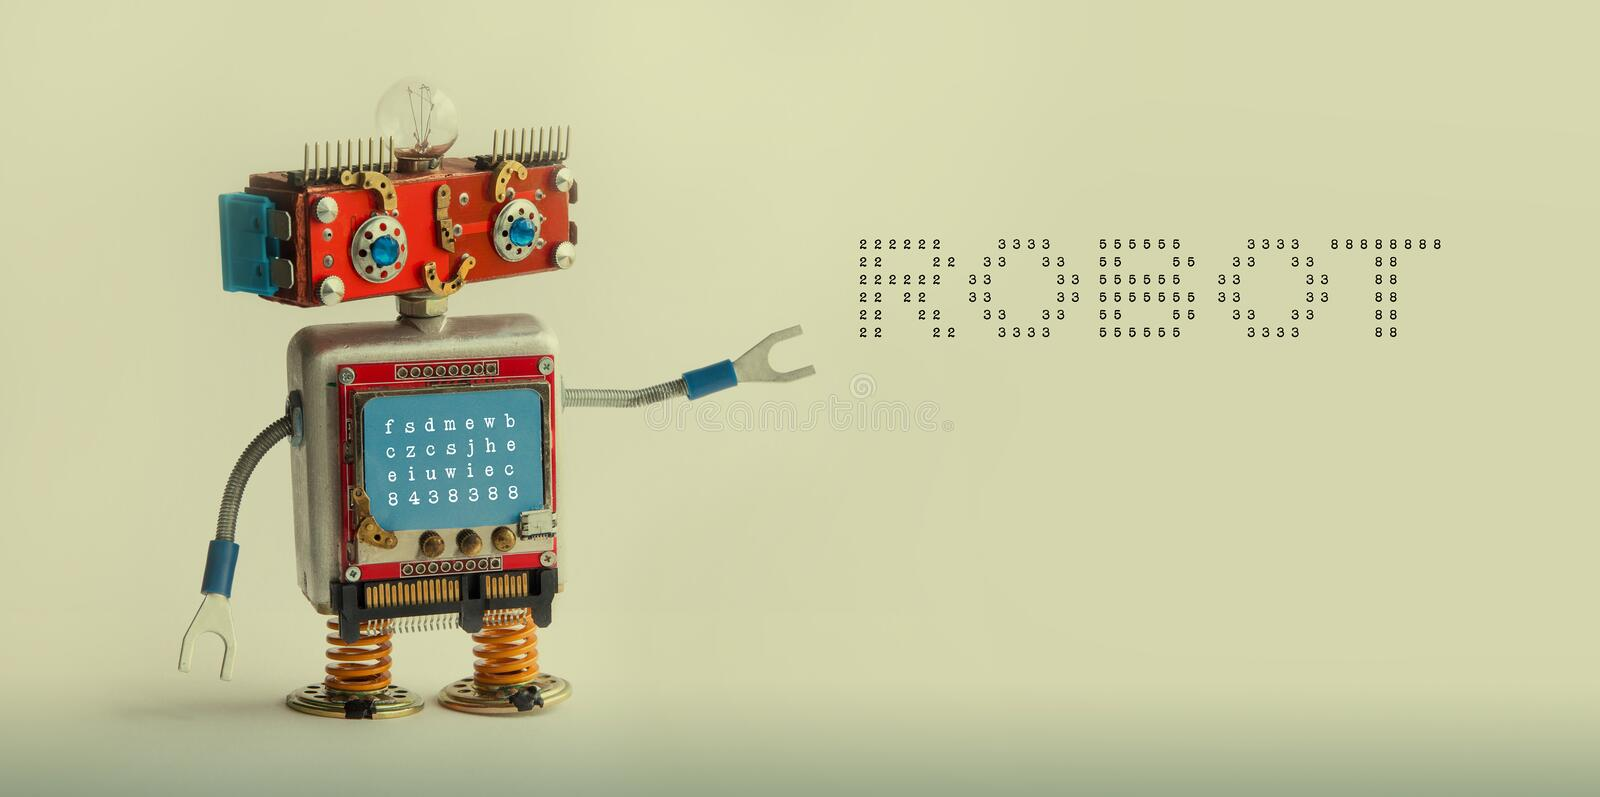 Robotic technology concept. IT specialist cyborg toy, smiley red head blue monitor body. Robot digital message on beige stock images